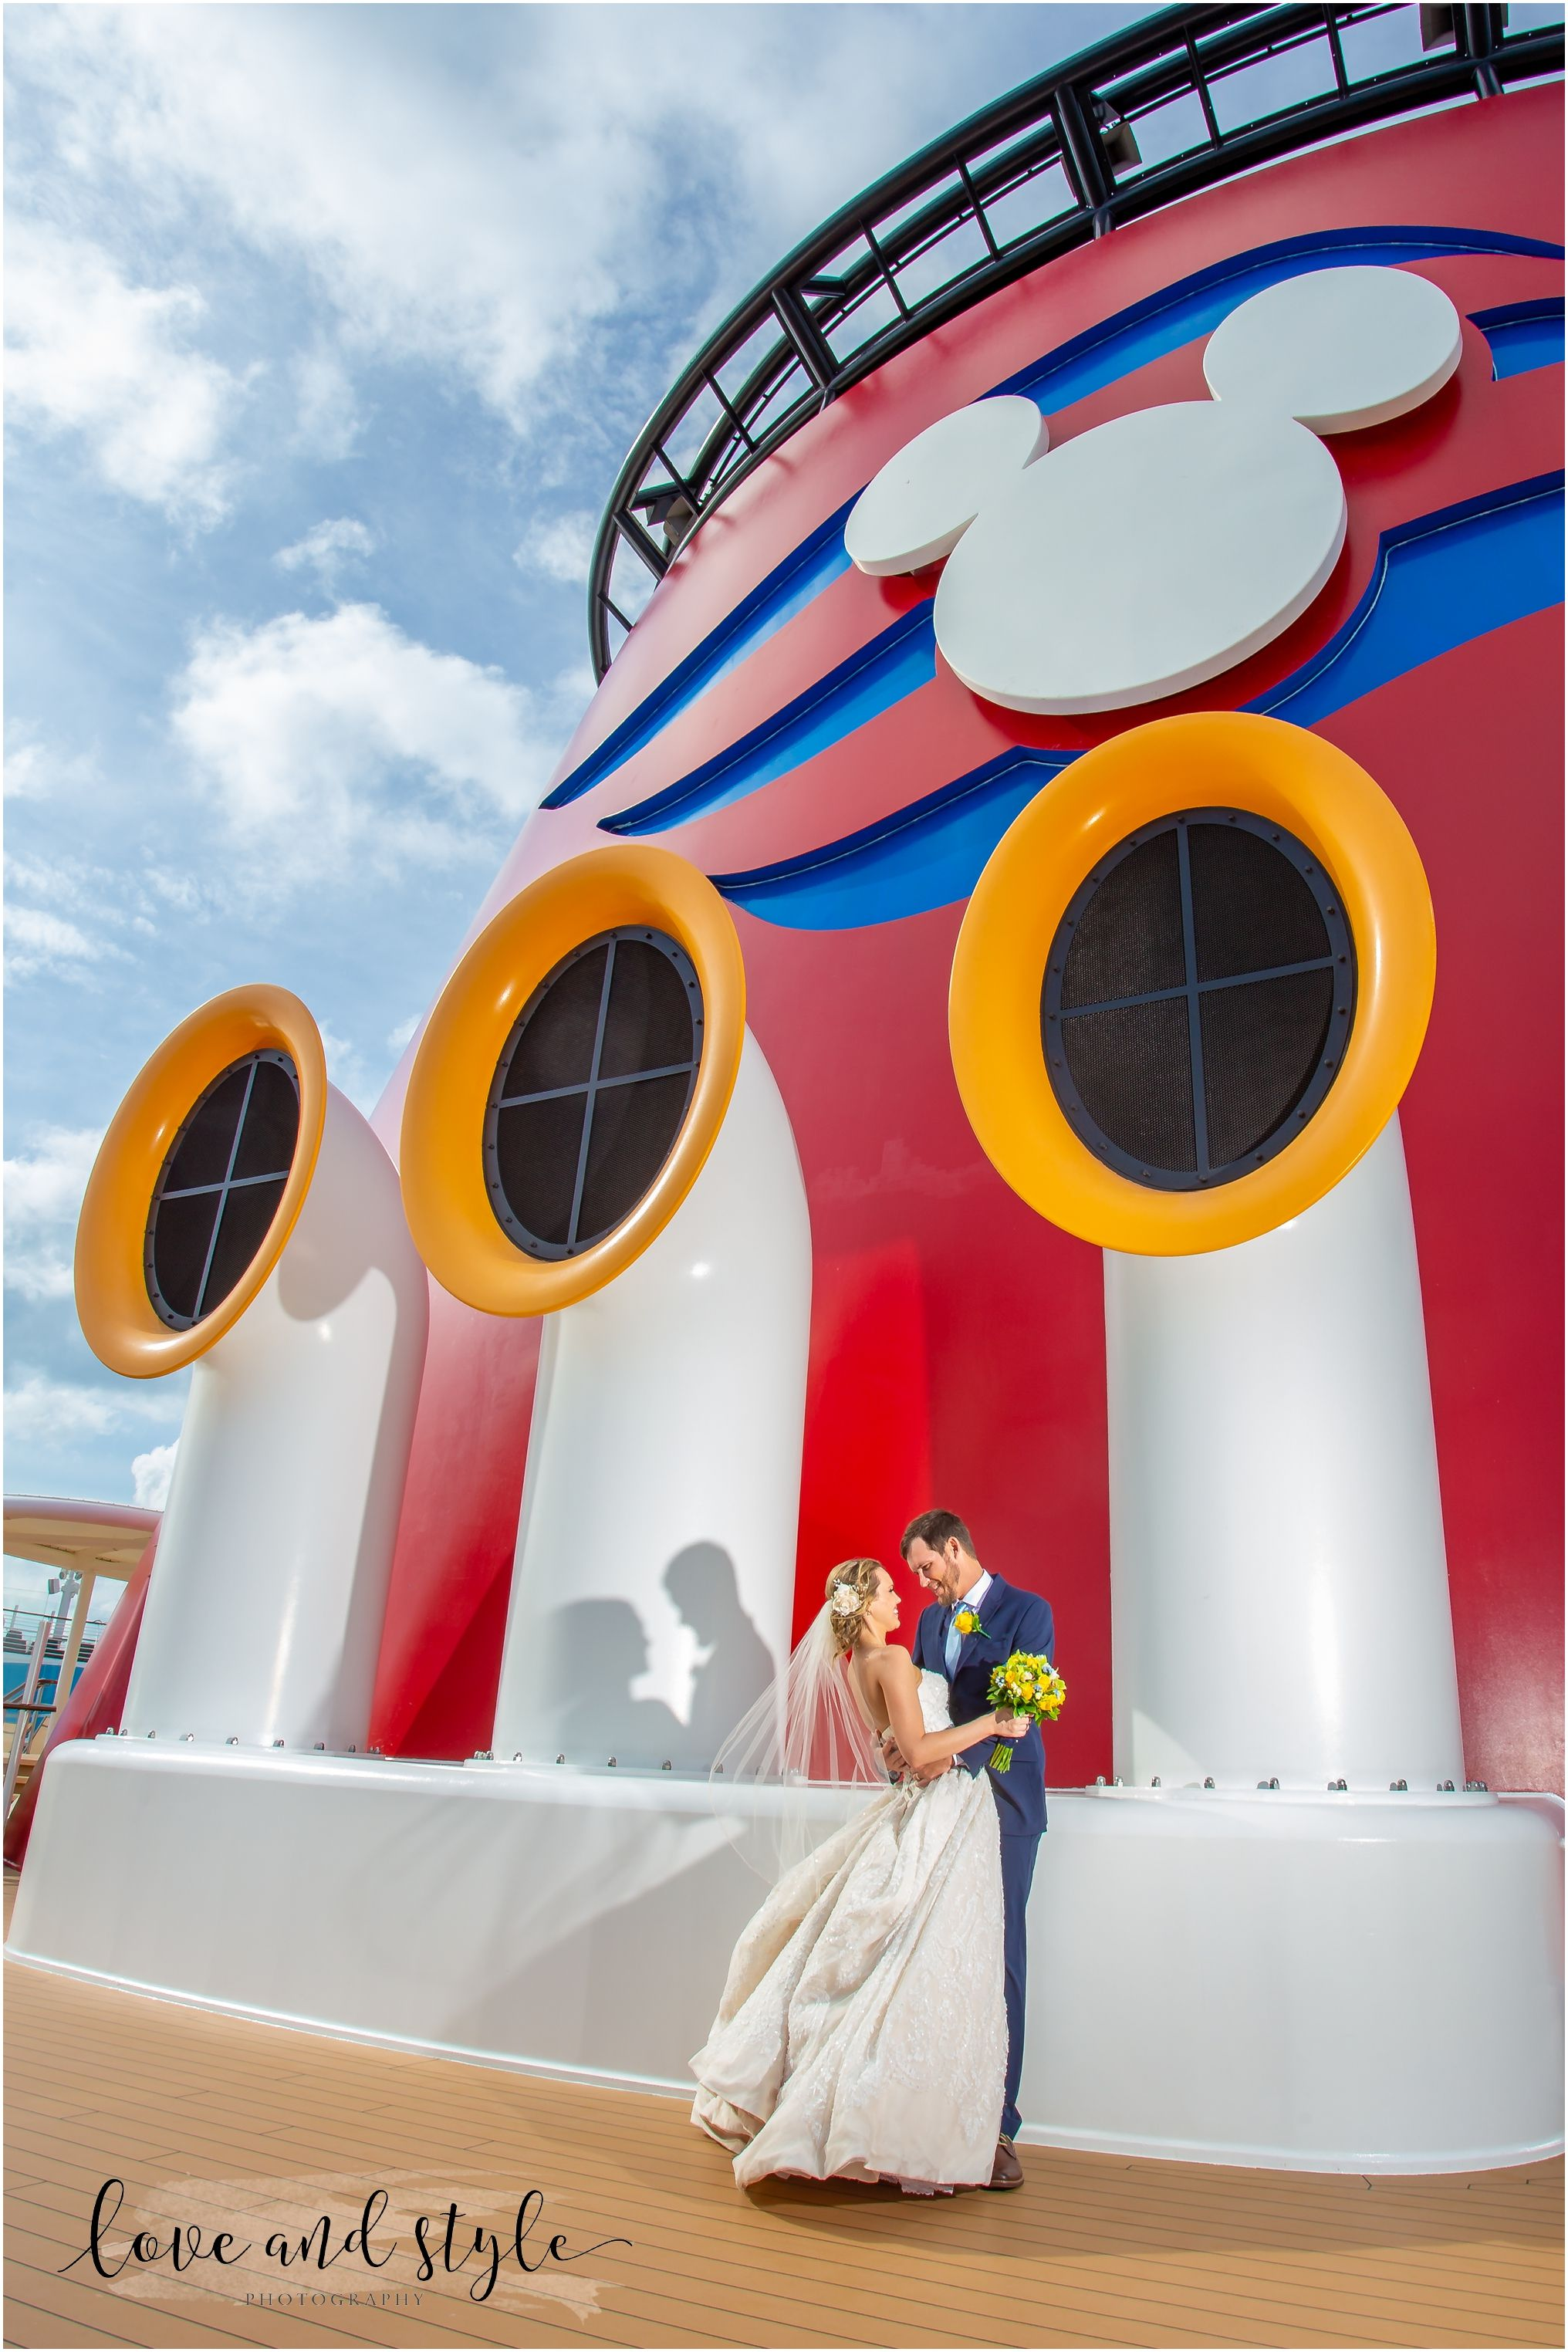 Disney Dream Cruise Ship Wedding Photo of the bride and groom on the deck  under Mickey ears #Disne… (With images) | Disney dream cruise, Cruise  wedding, Disney cruise wedding